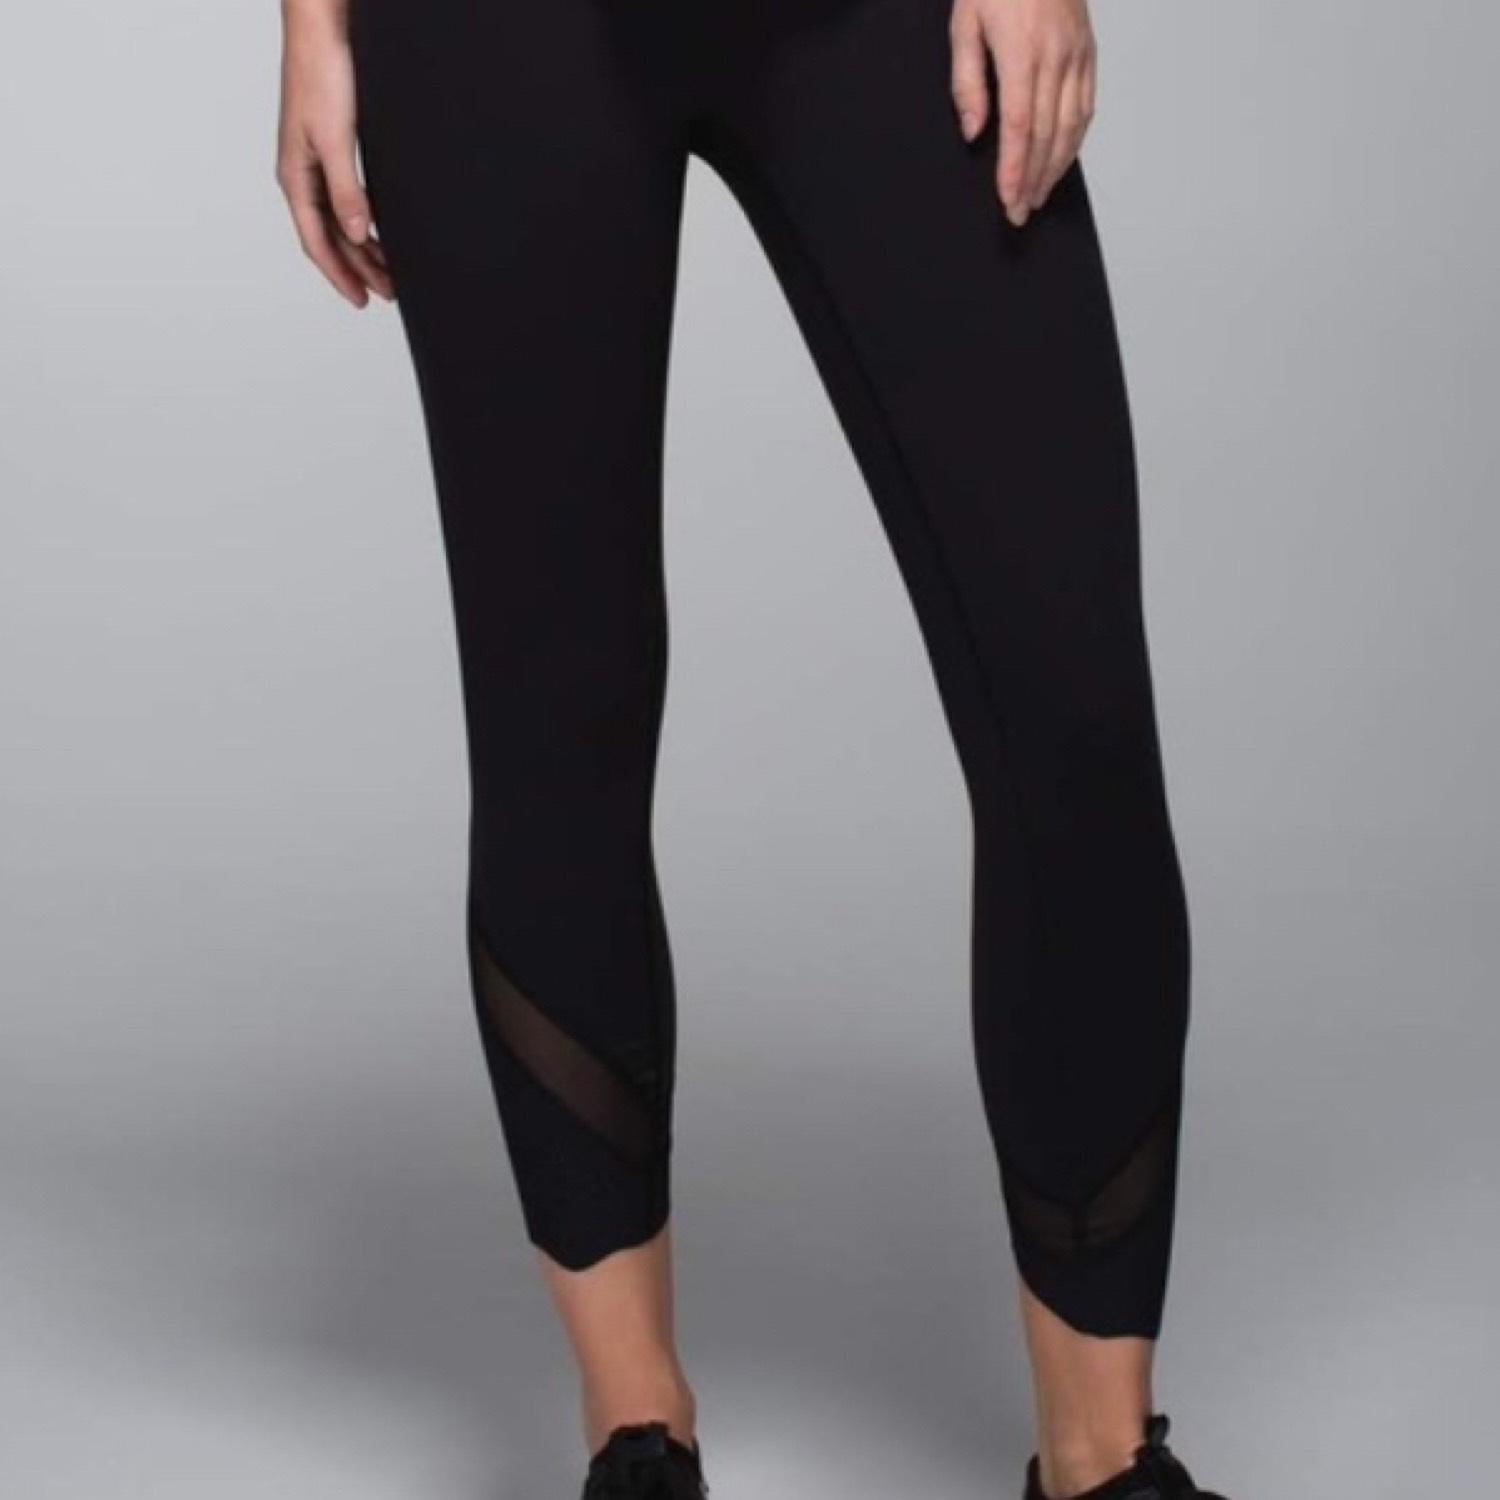 Lululemon was well ahead of the activewear curve when it first launched in , selling leggings and hoodies that customers wanted to wear for everyday life years before athleisure became the norm.